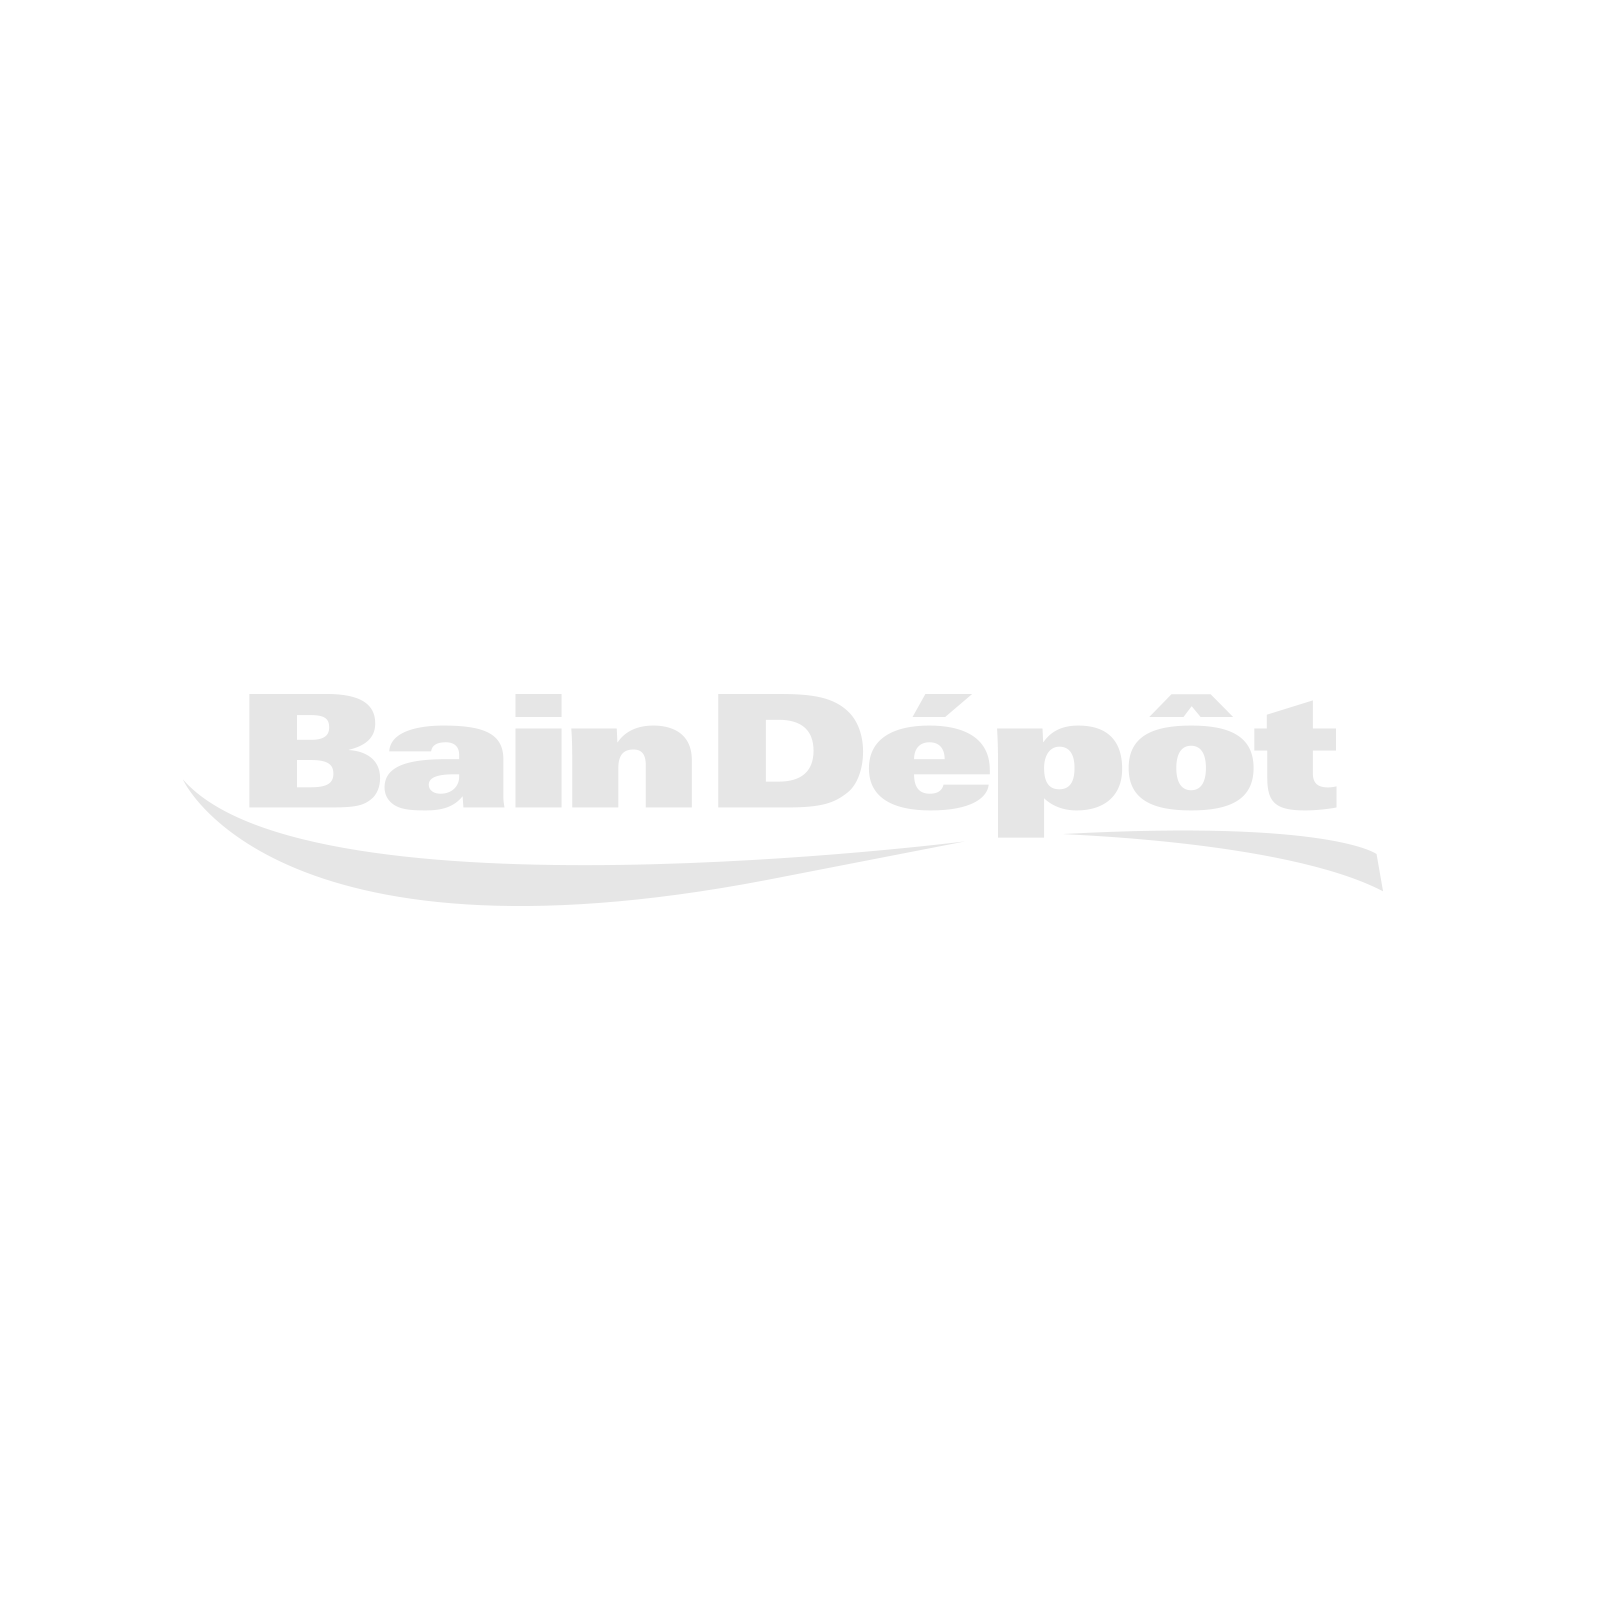 "30"" x 30"" x 13"" Two-door wall kitchen cabinet"